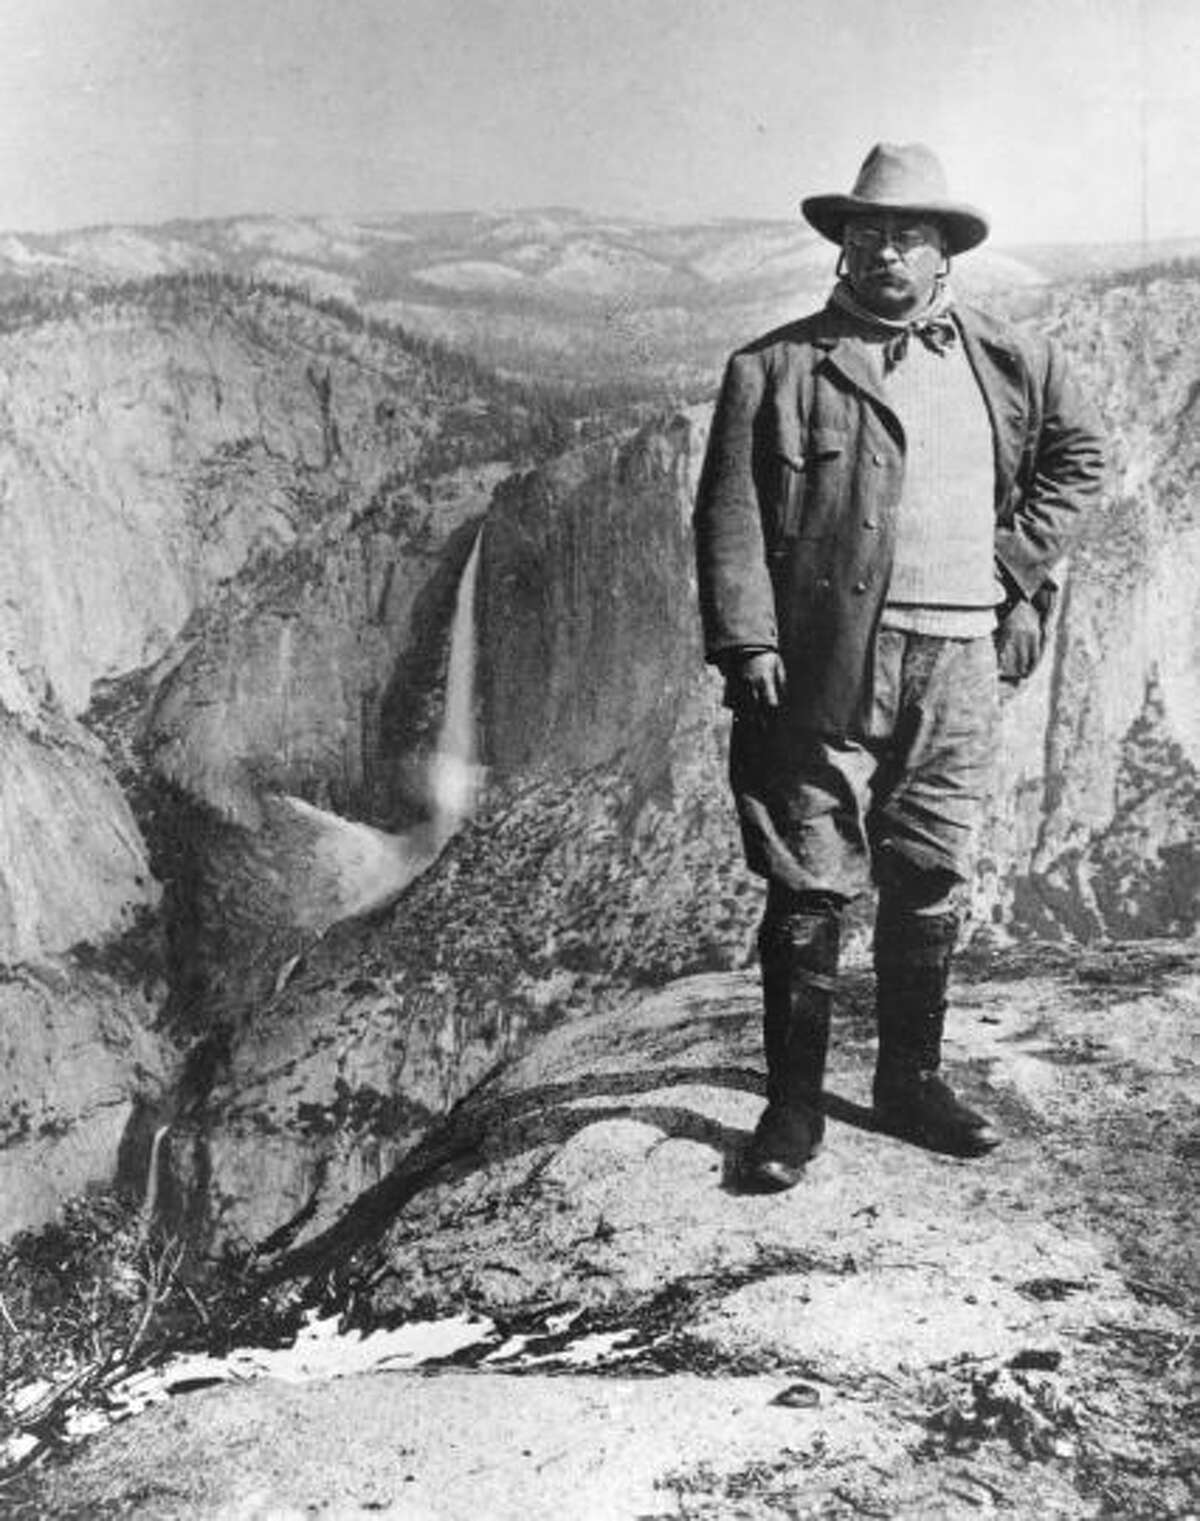 Theodore Roosevelt used the 1906 Antiquities Act to create the Olympic and Grand Canyon national monuments, which later became two of America's greatest national parks.  Miners and loggers furiously opposed his decisions.